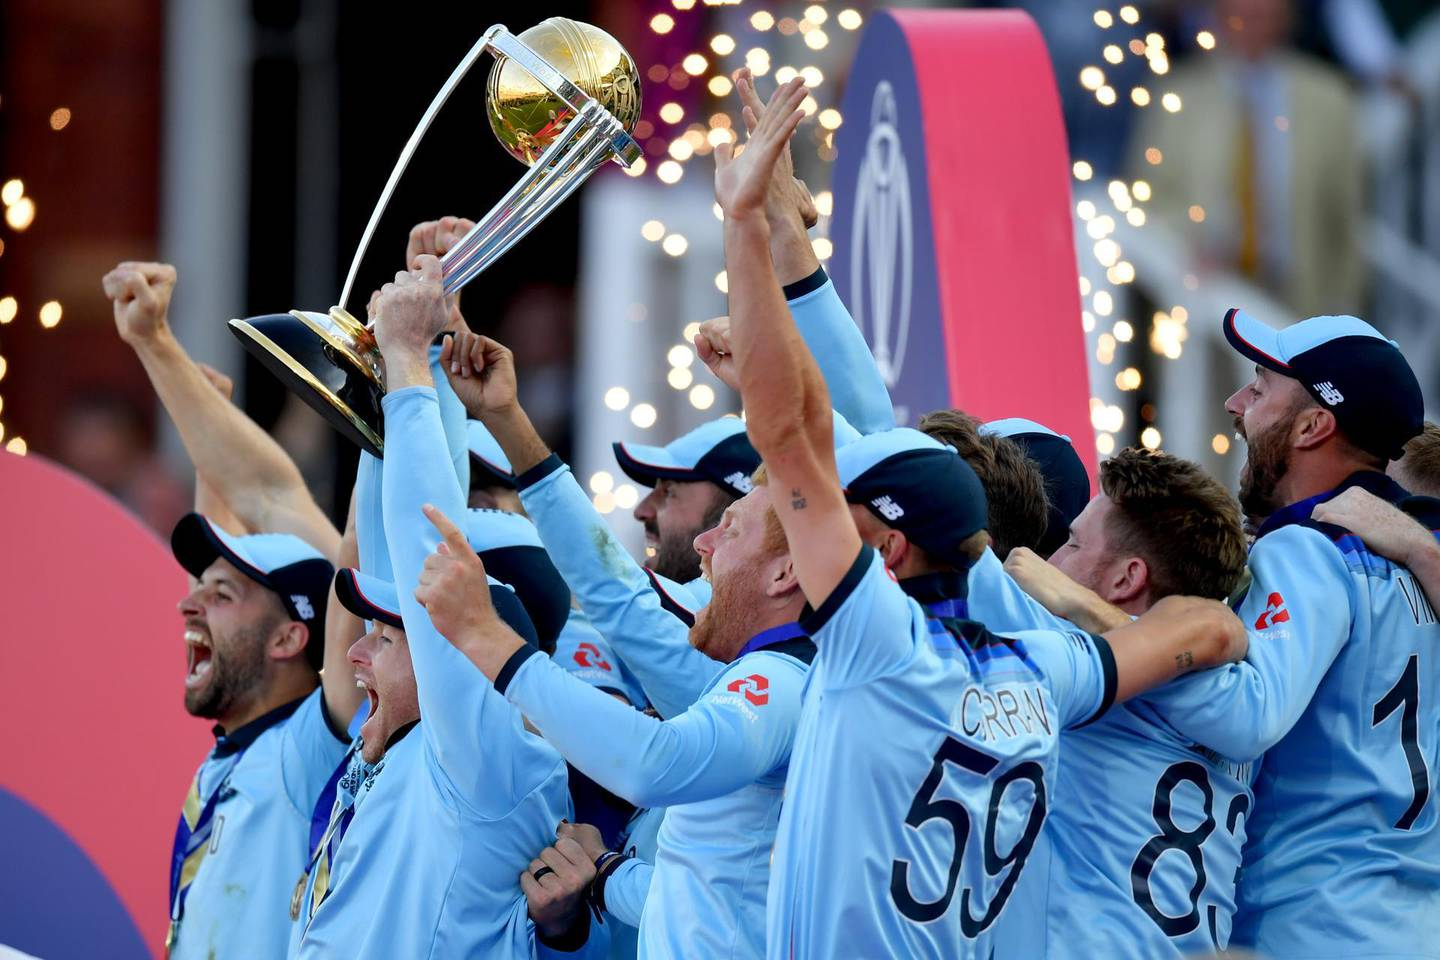 LONDON, ENGLAND - JULY 14: England Captain Eoin Morgan lifts the World Cup after victory for England during the Final of the ICC Cricket World Cup 2019 between New Zealand and England at Lord's Cricket Ground on July 14, 2019 in London, England. (Photo by Mike Hewitt/Getty Images)